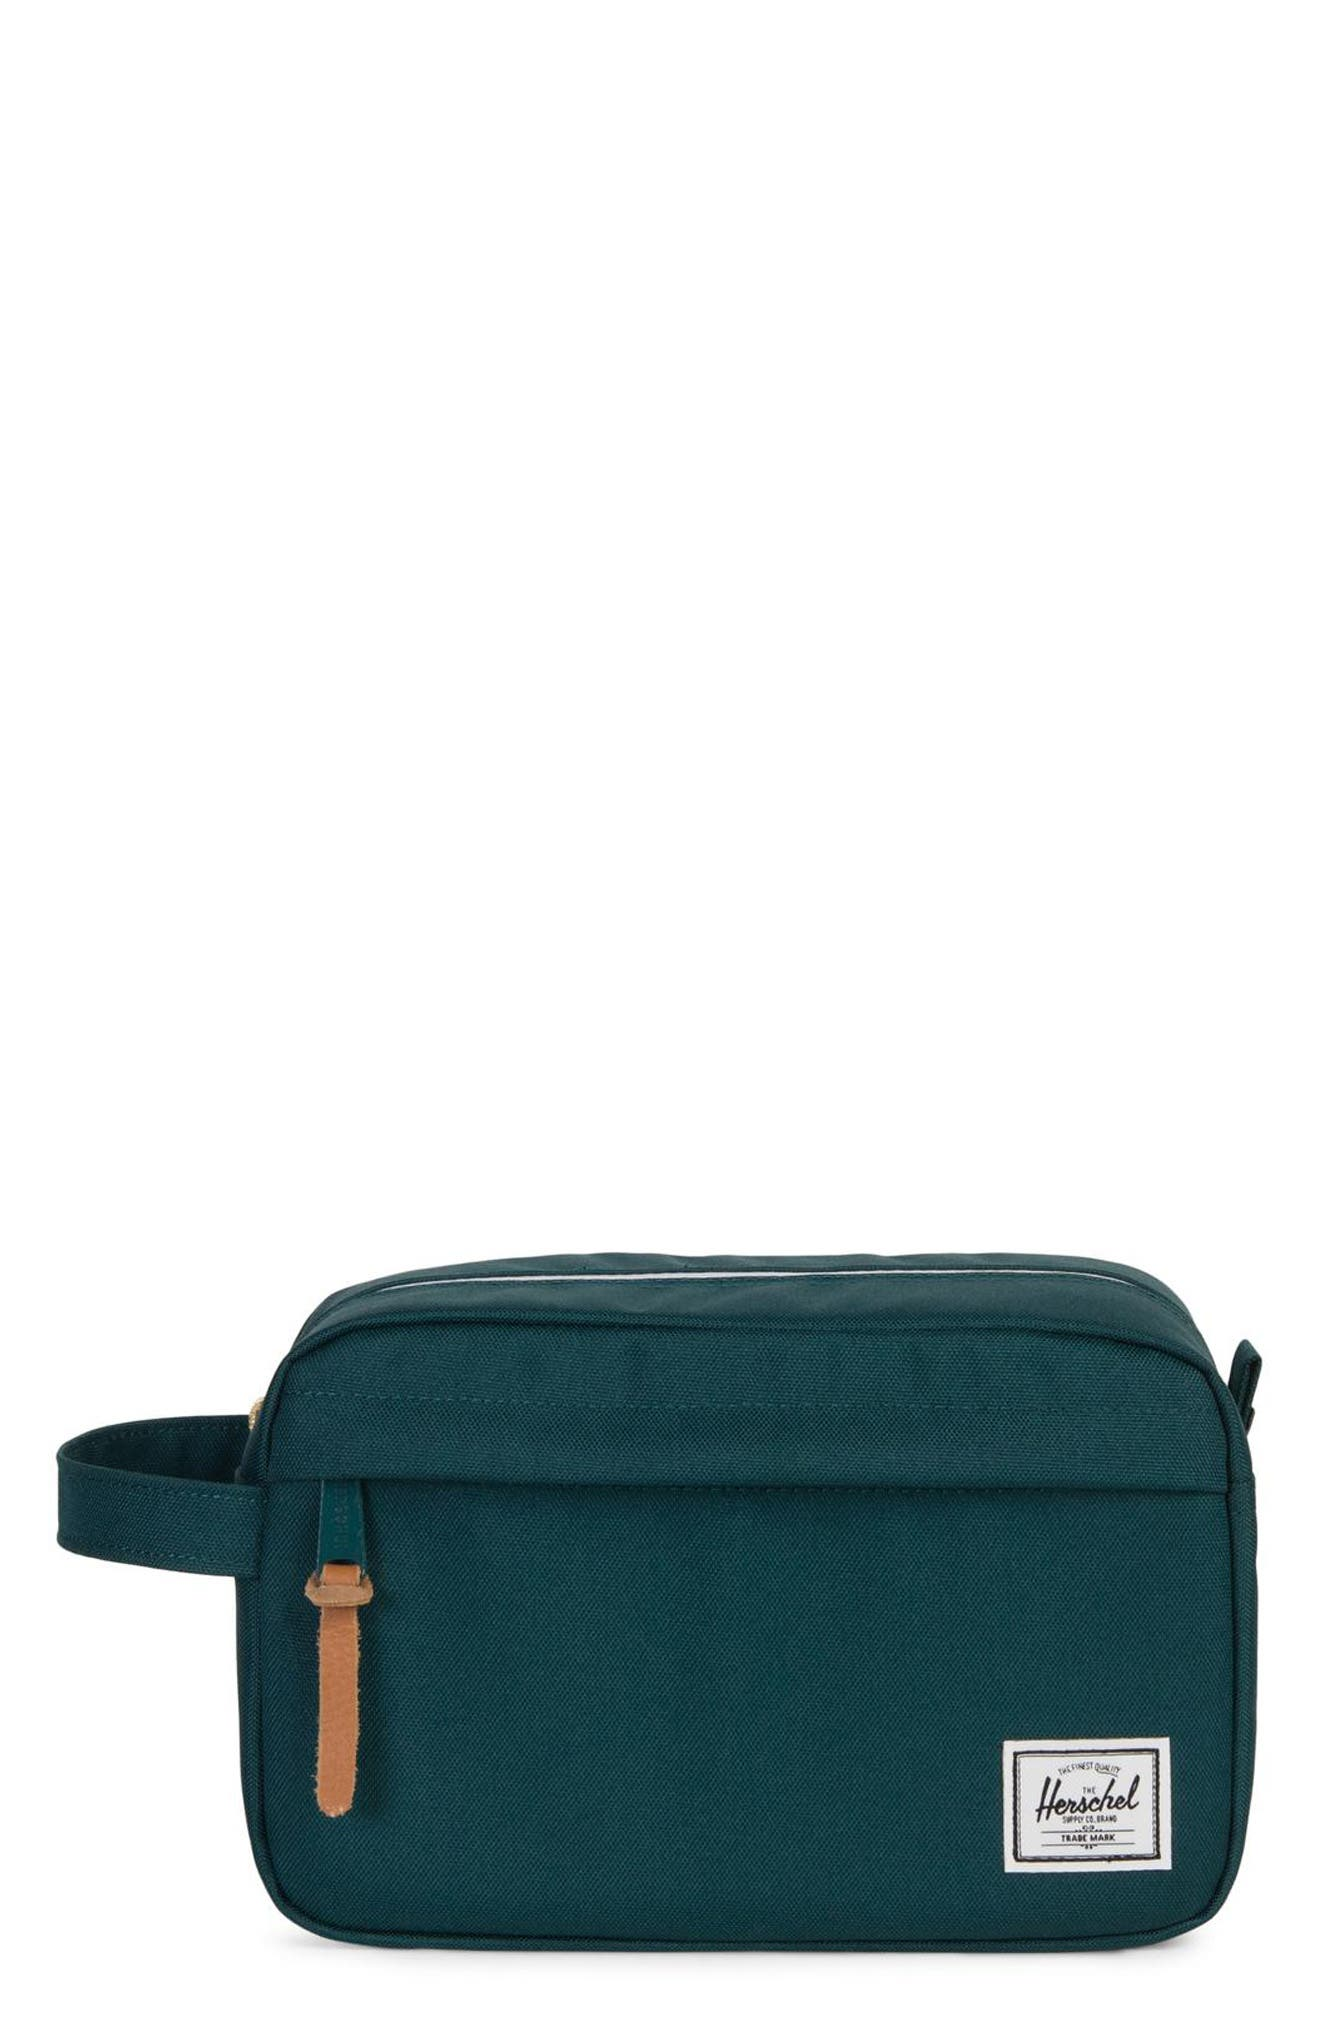 'Chapter' Toiletry Case,                             Main thumbnail 1, color,                             DEEP TEAL